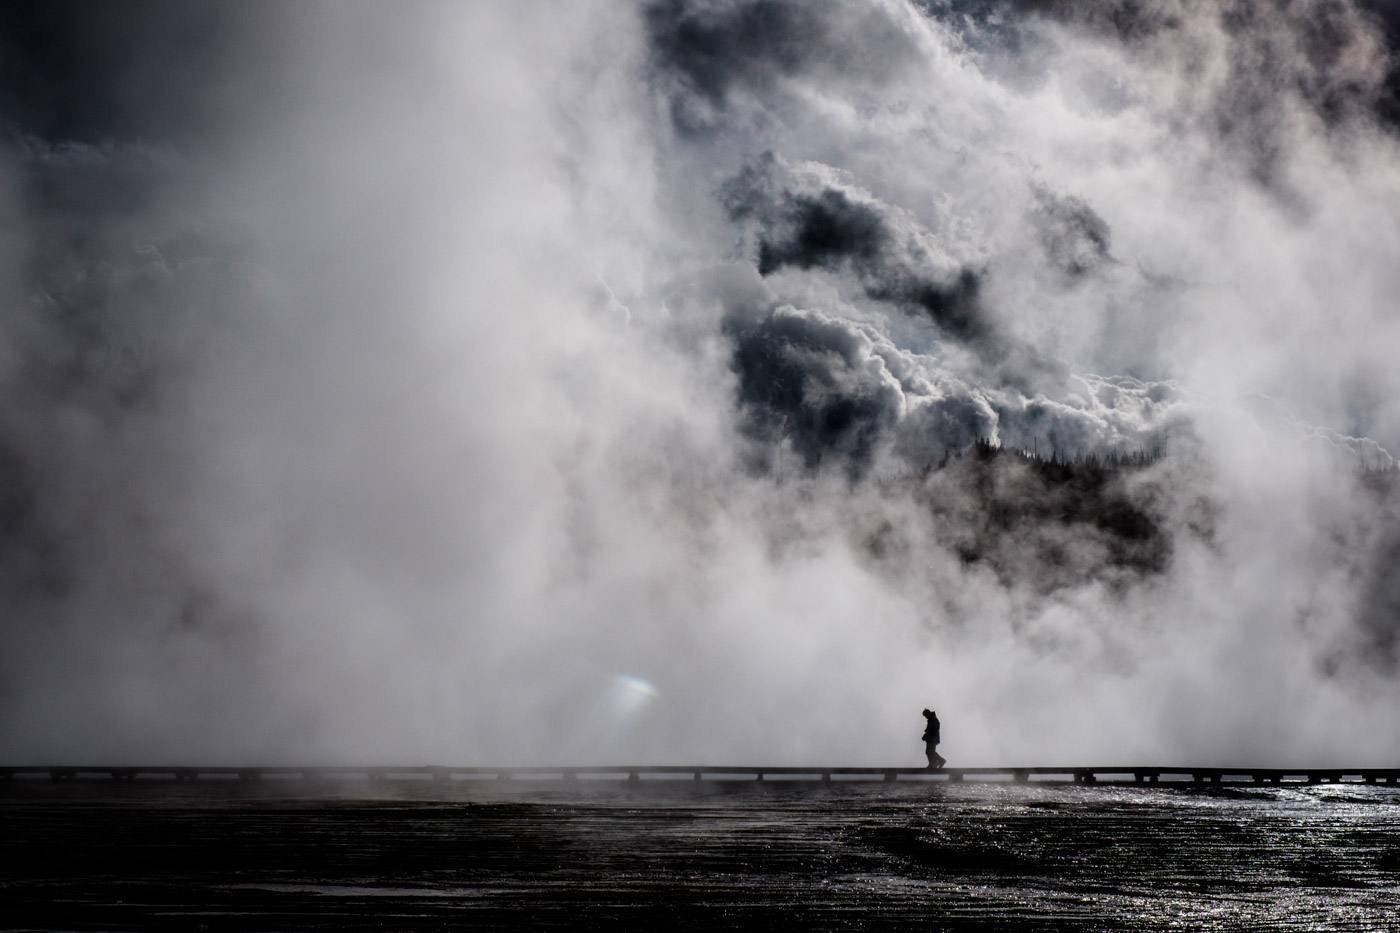 The world ended at Midway geyser basin, Yellowstone. Fujifilm X-T1, 35mm